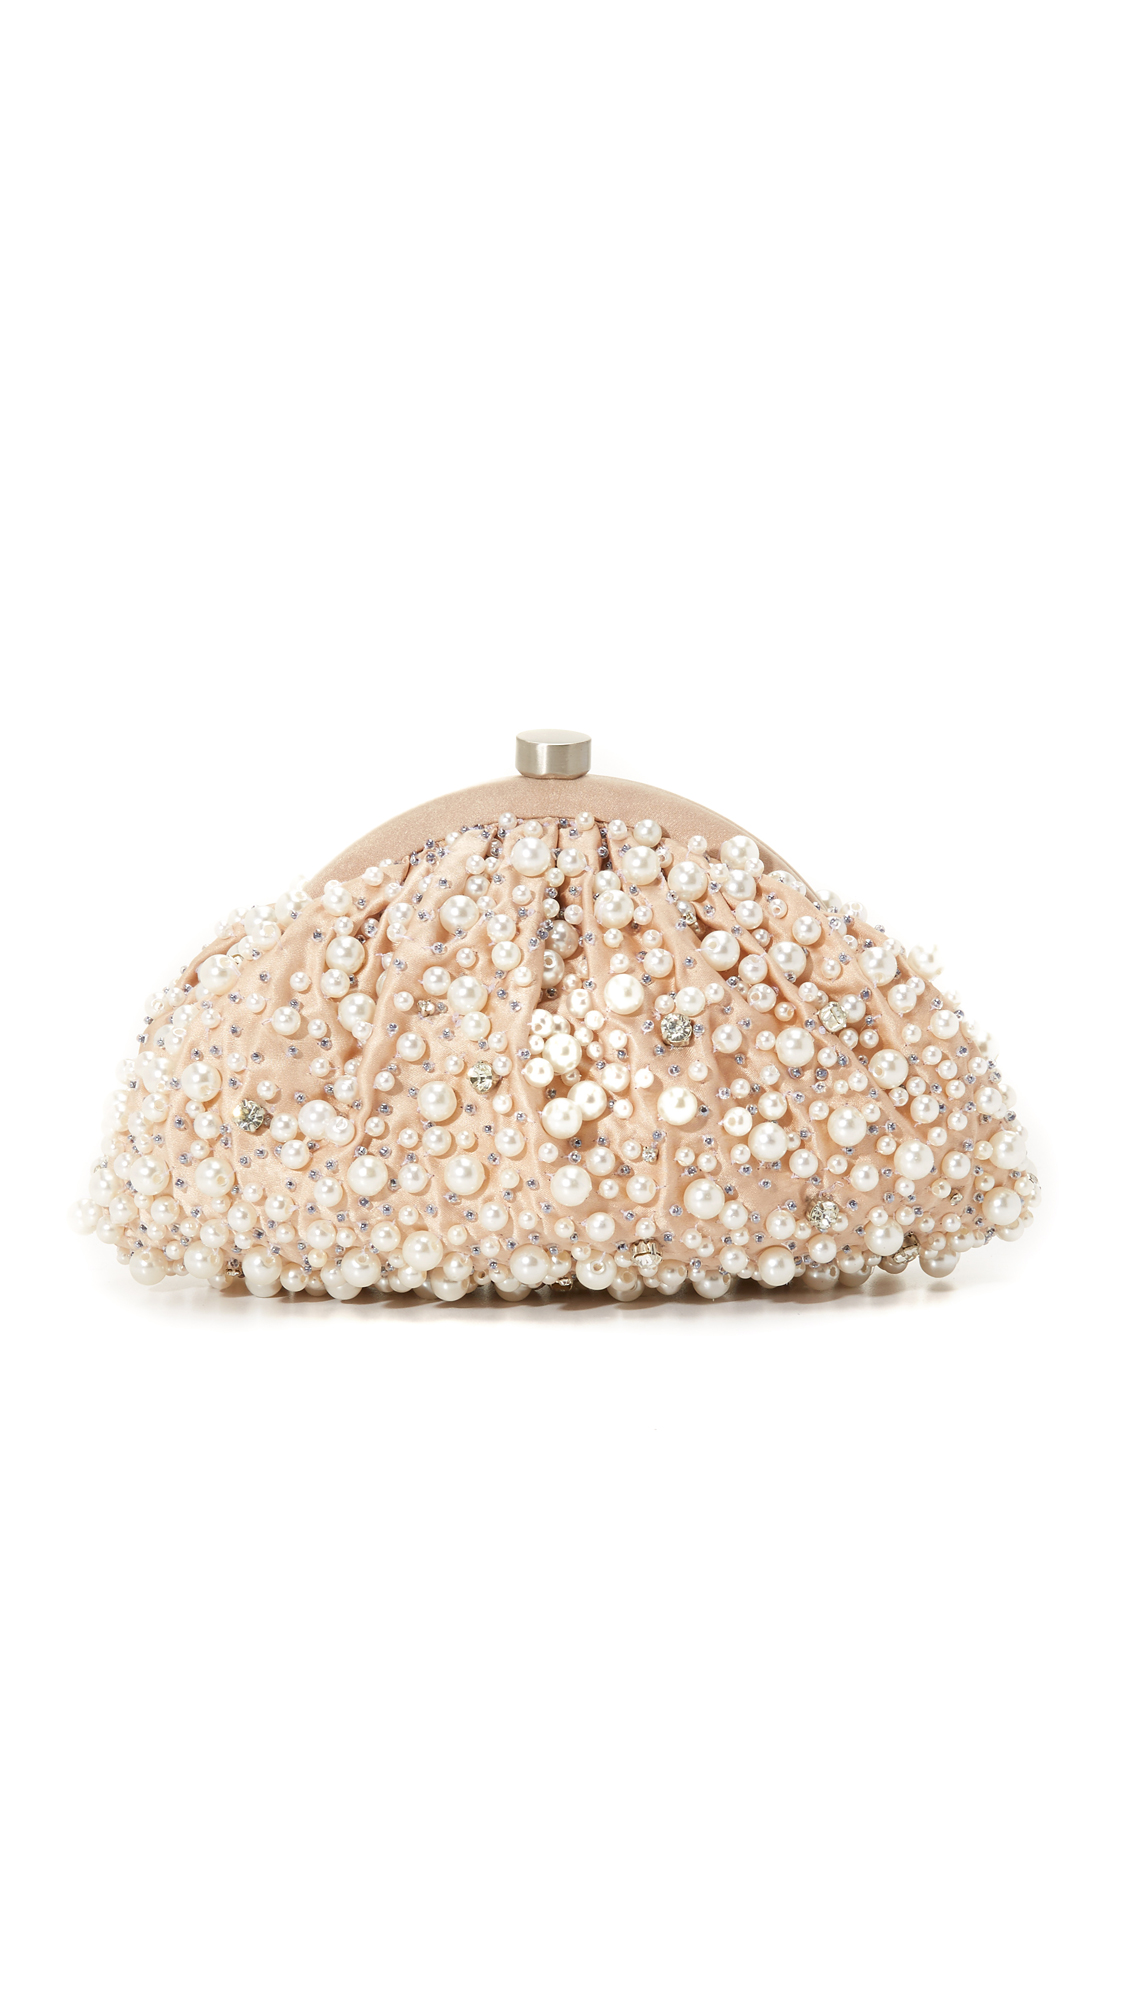 The soft shimmer of imitation pearls gives a soft Santi clutch an edge of romantic charm. Sparkling crystals and tiny beads finish the pretty exterior, and the push lock top opens to a satin interior. The